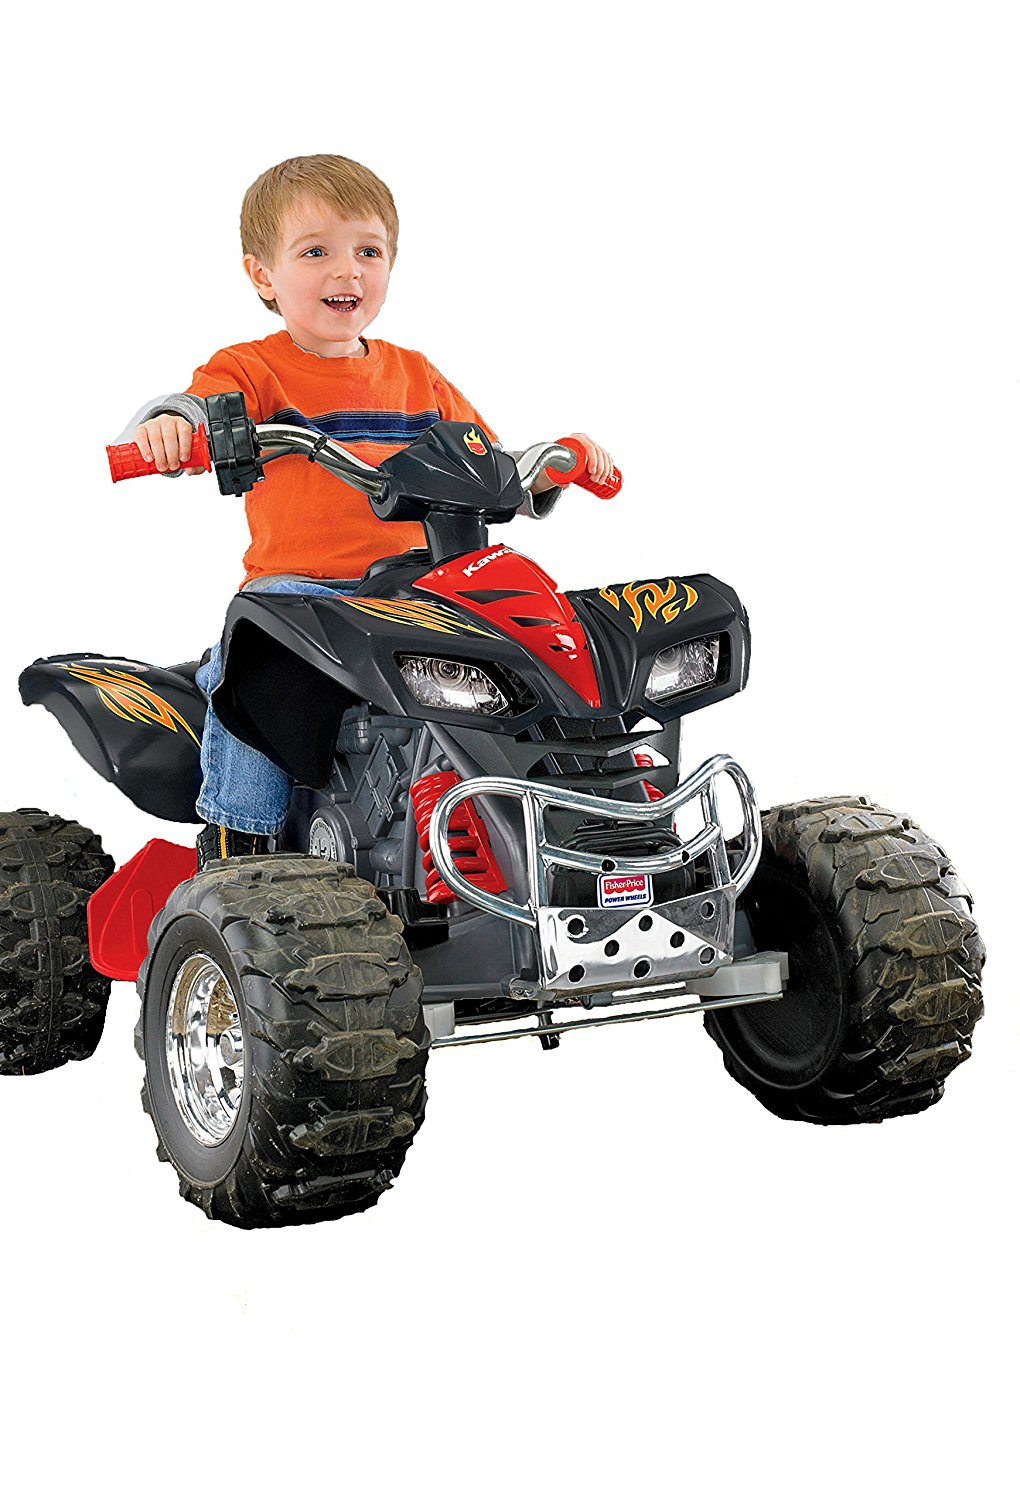 The Top 10 Electric Ride-On Cars for Kids for Christmas 2017